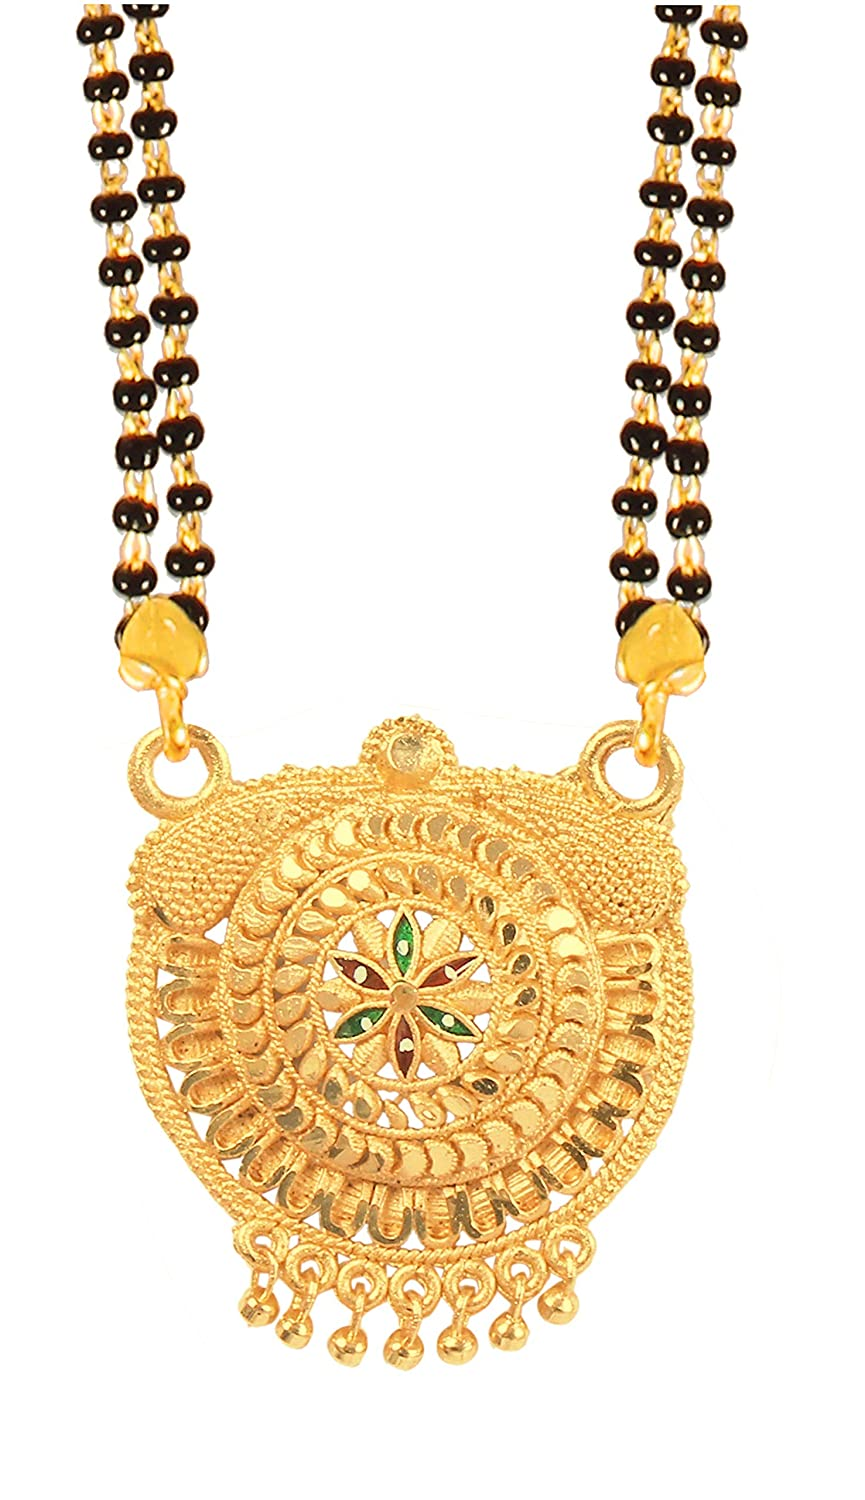 RADHEKRISHNA golden color alloy material beautiful long fold over head 24 inch mangalsutra with free golden small earrings